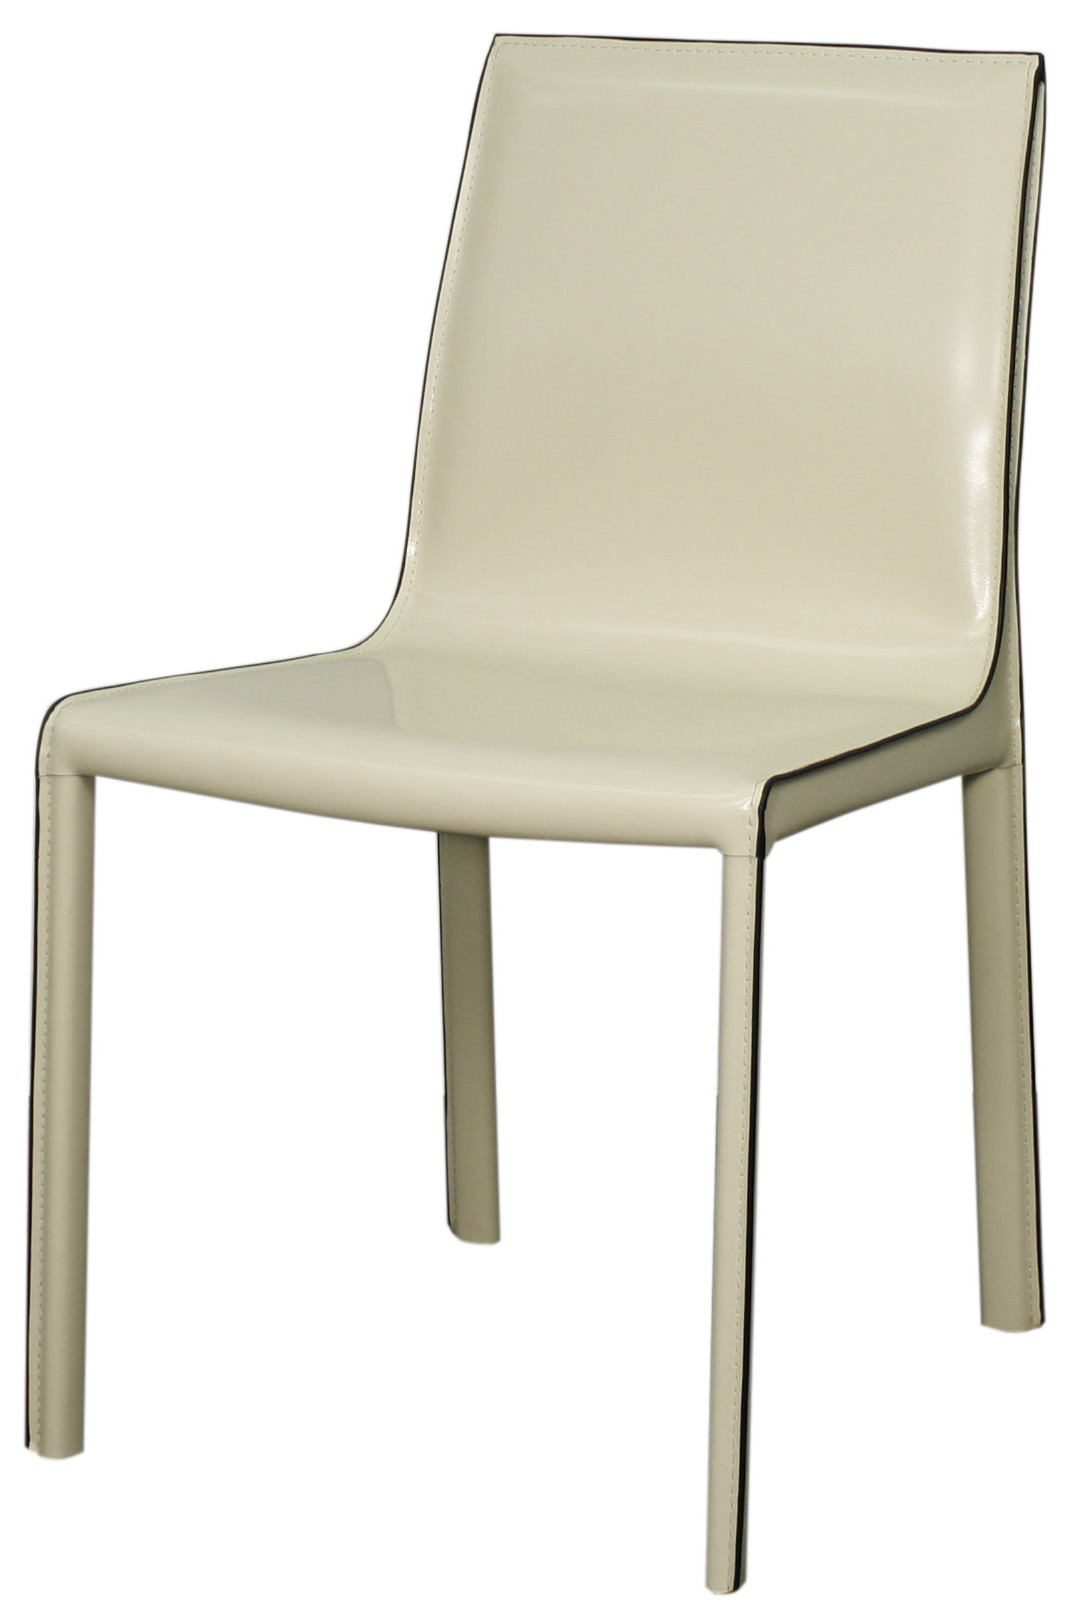 Set of 2 gervin recycled leather chair - 4 colors